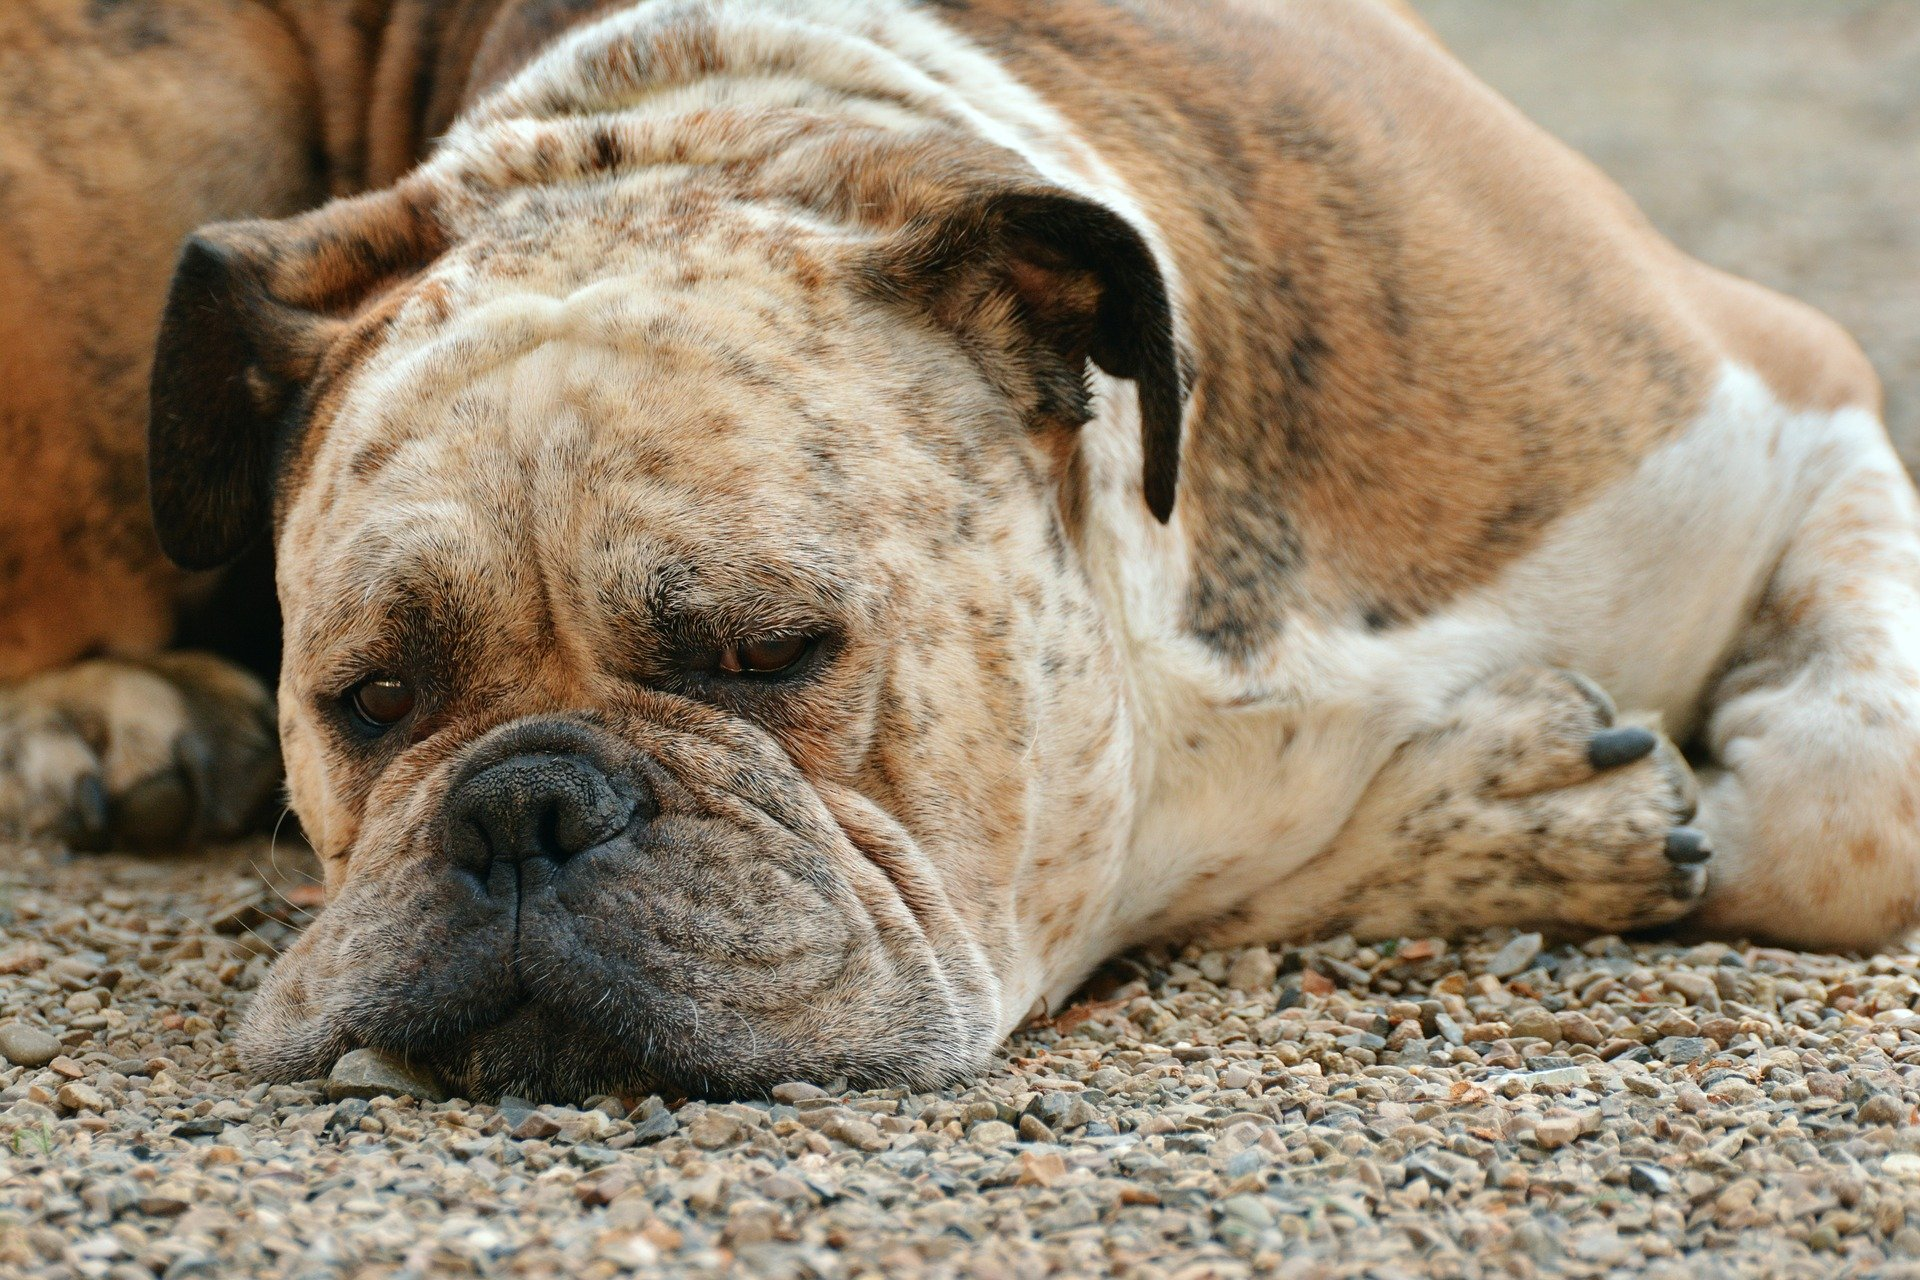 Photo of a dog laying down with a mopey face. Image courtesy of @congerdesign via Pixabay.